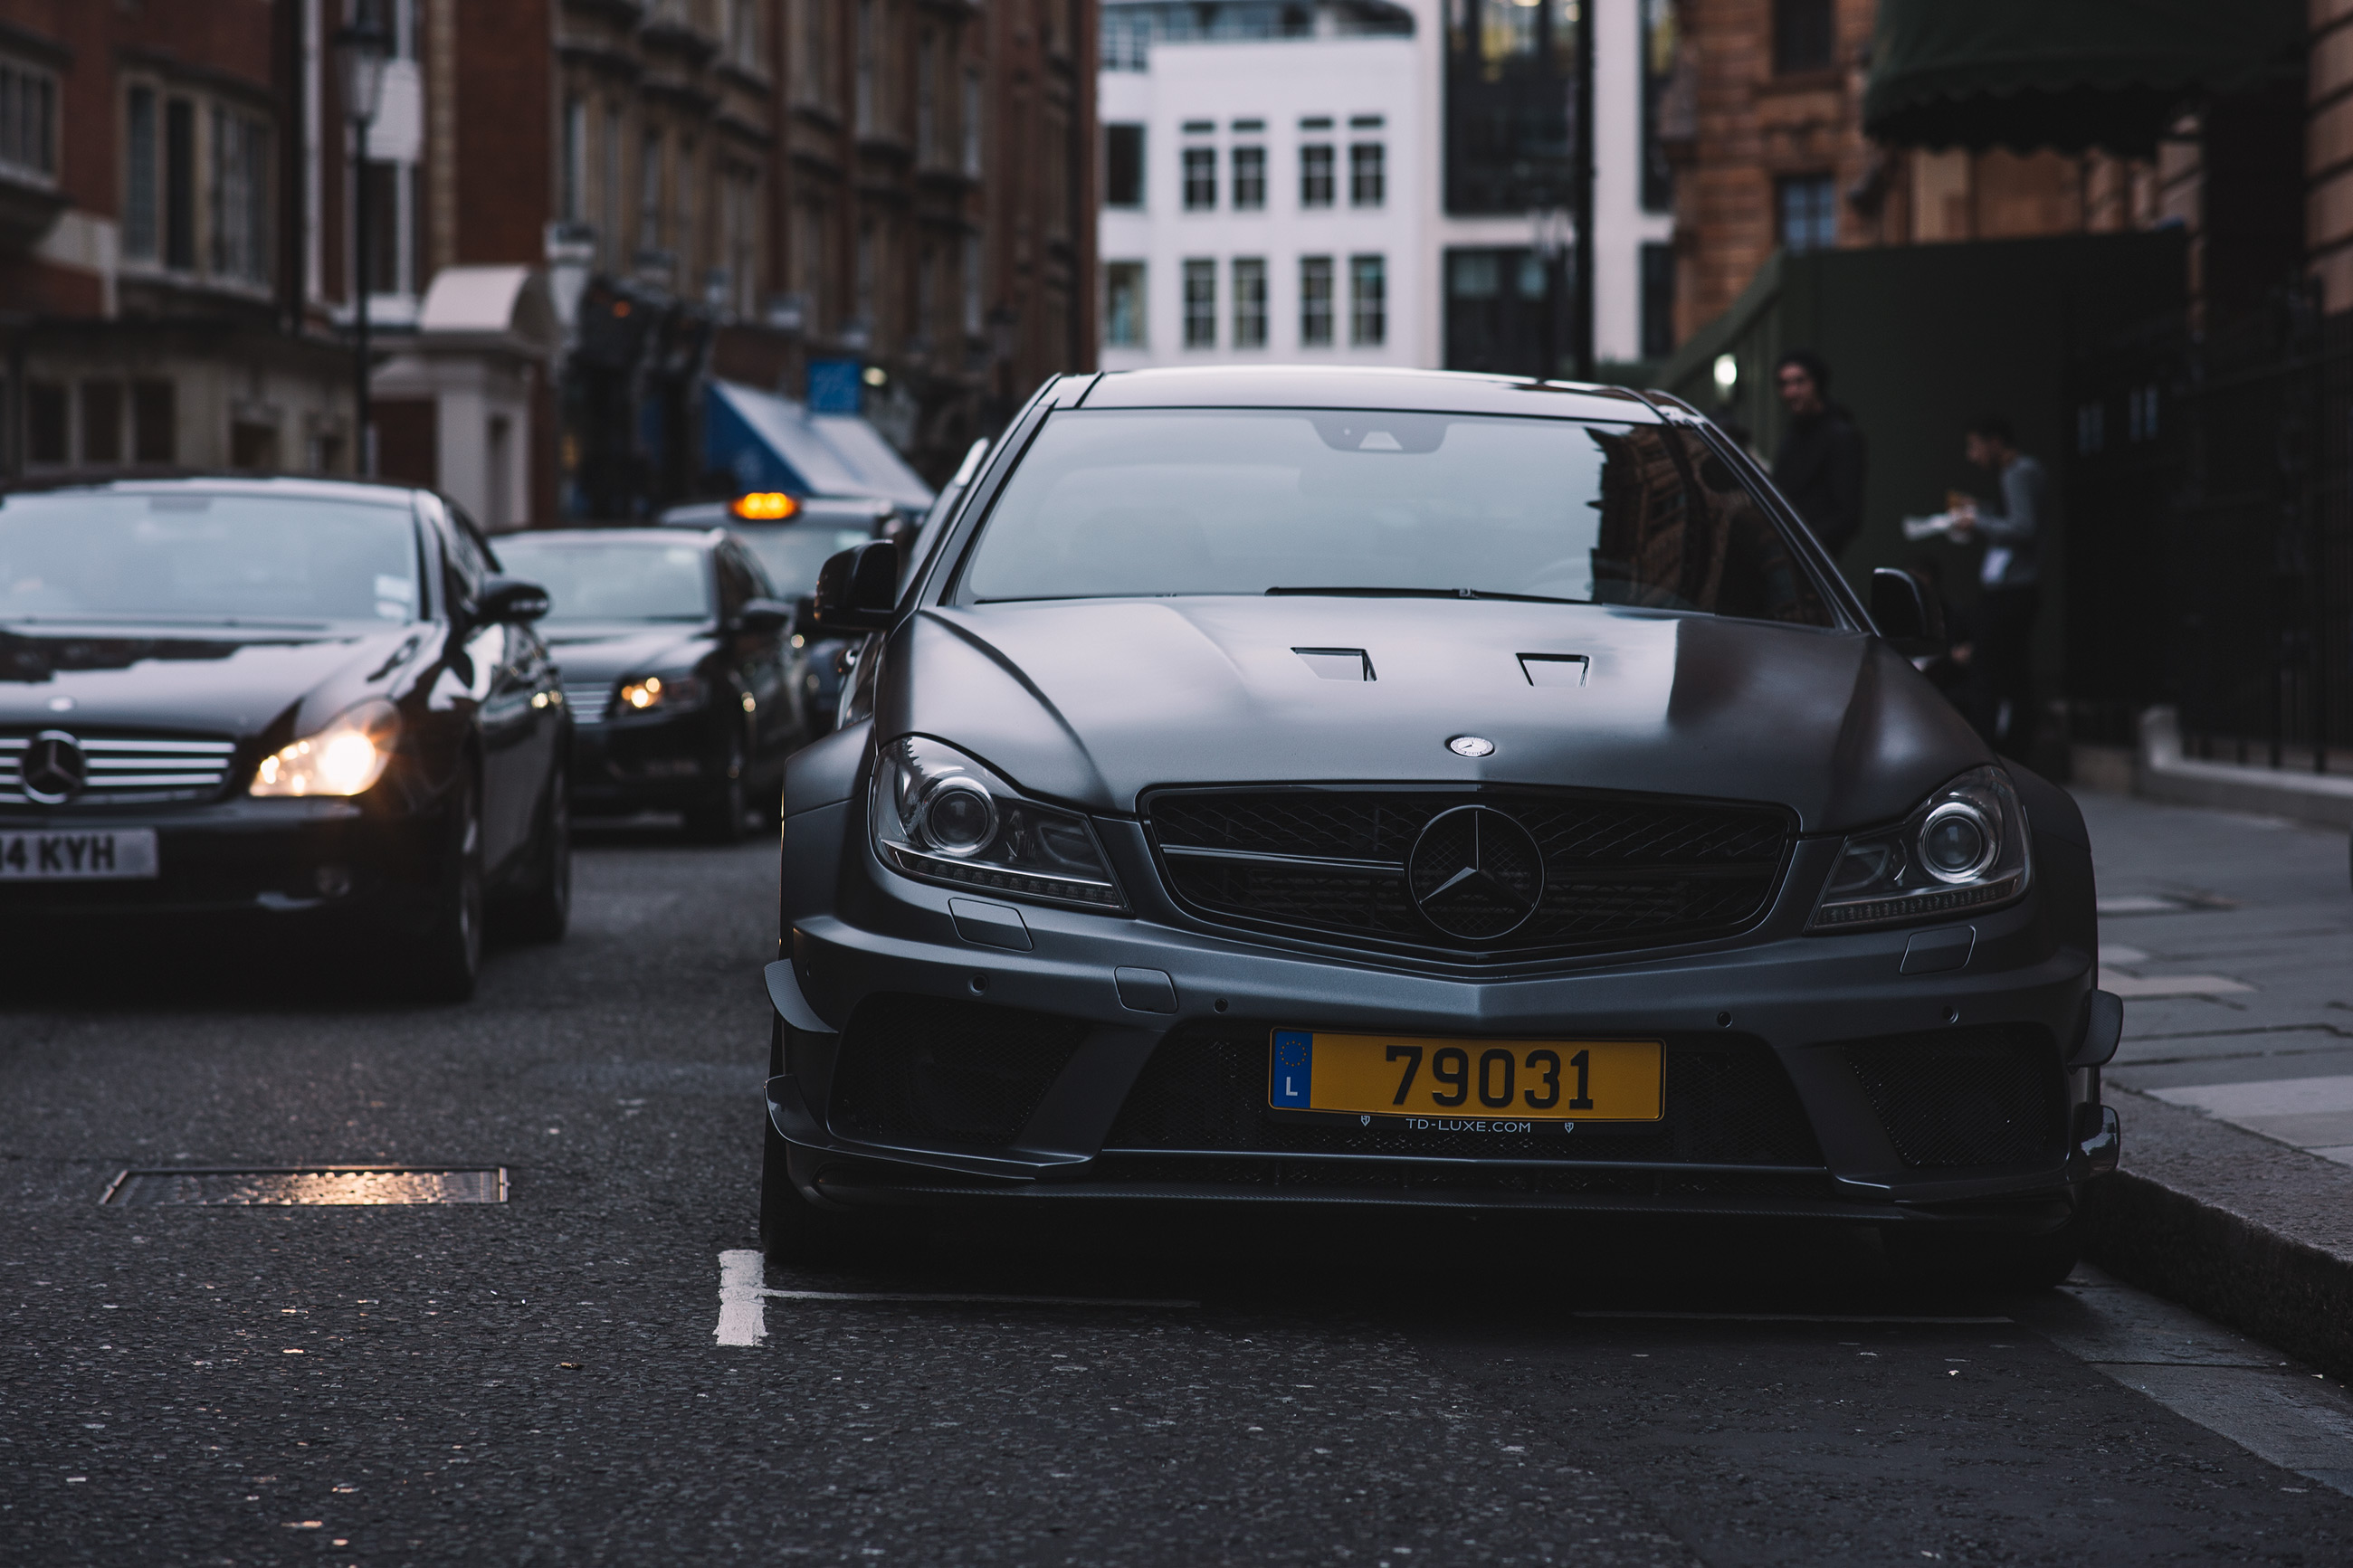 50 shades of C63 - TD Luxe